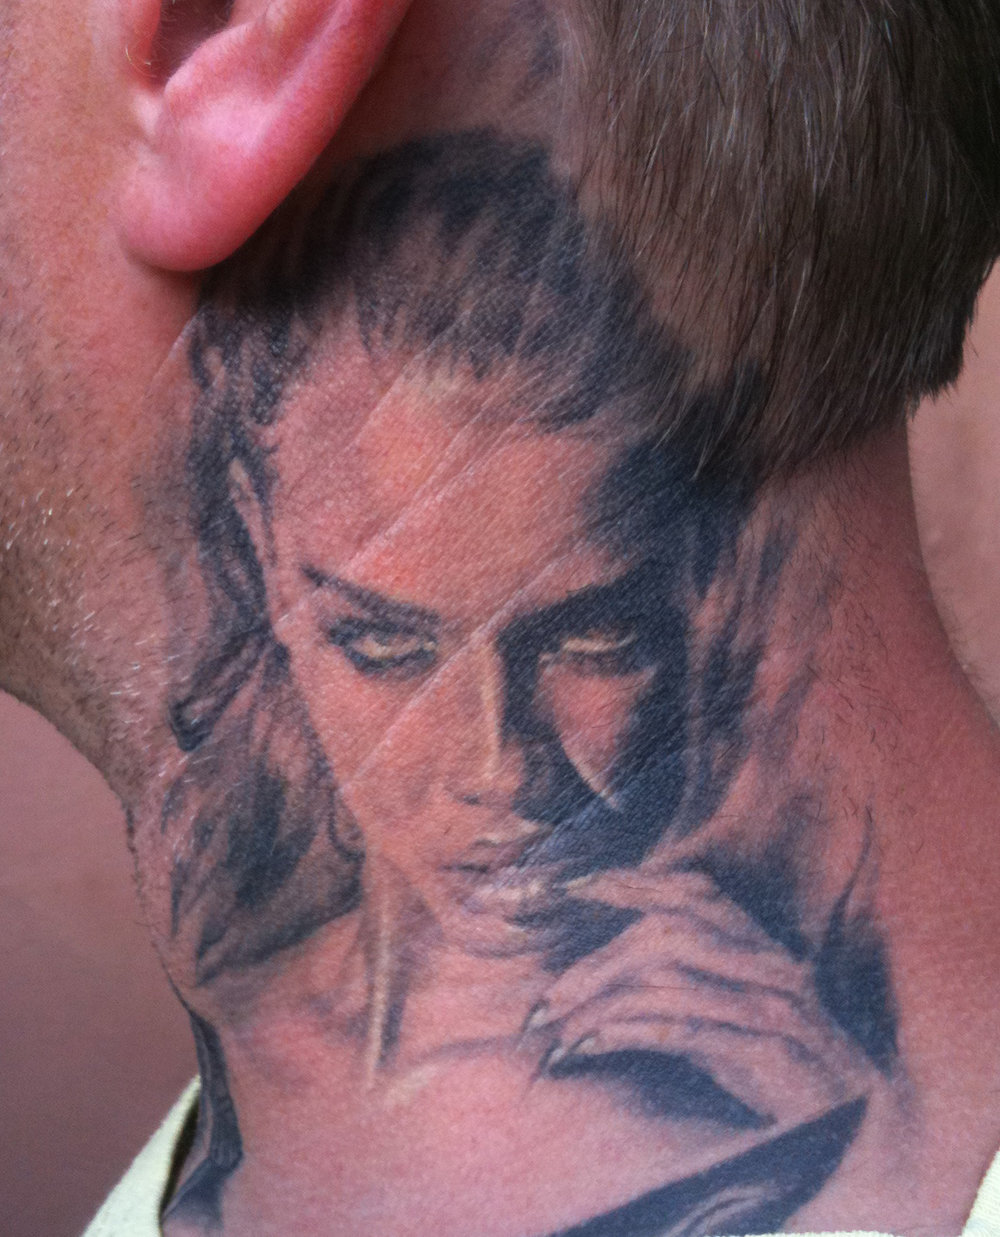 Black and Grey Neck Chick Portrait Tattoo, (tattoo is healed and 6 years old in this photo), Stockholm Ink Bash, Sweden